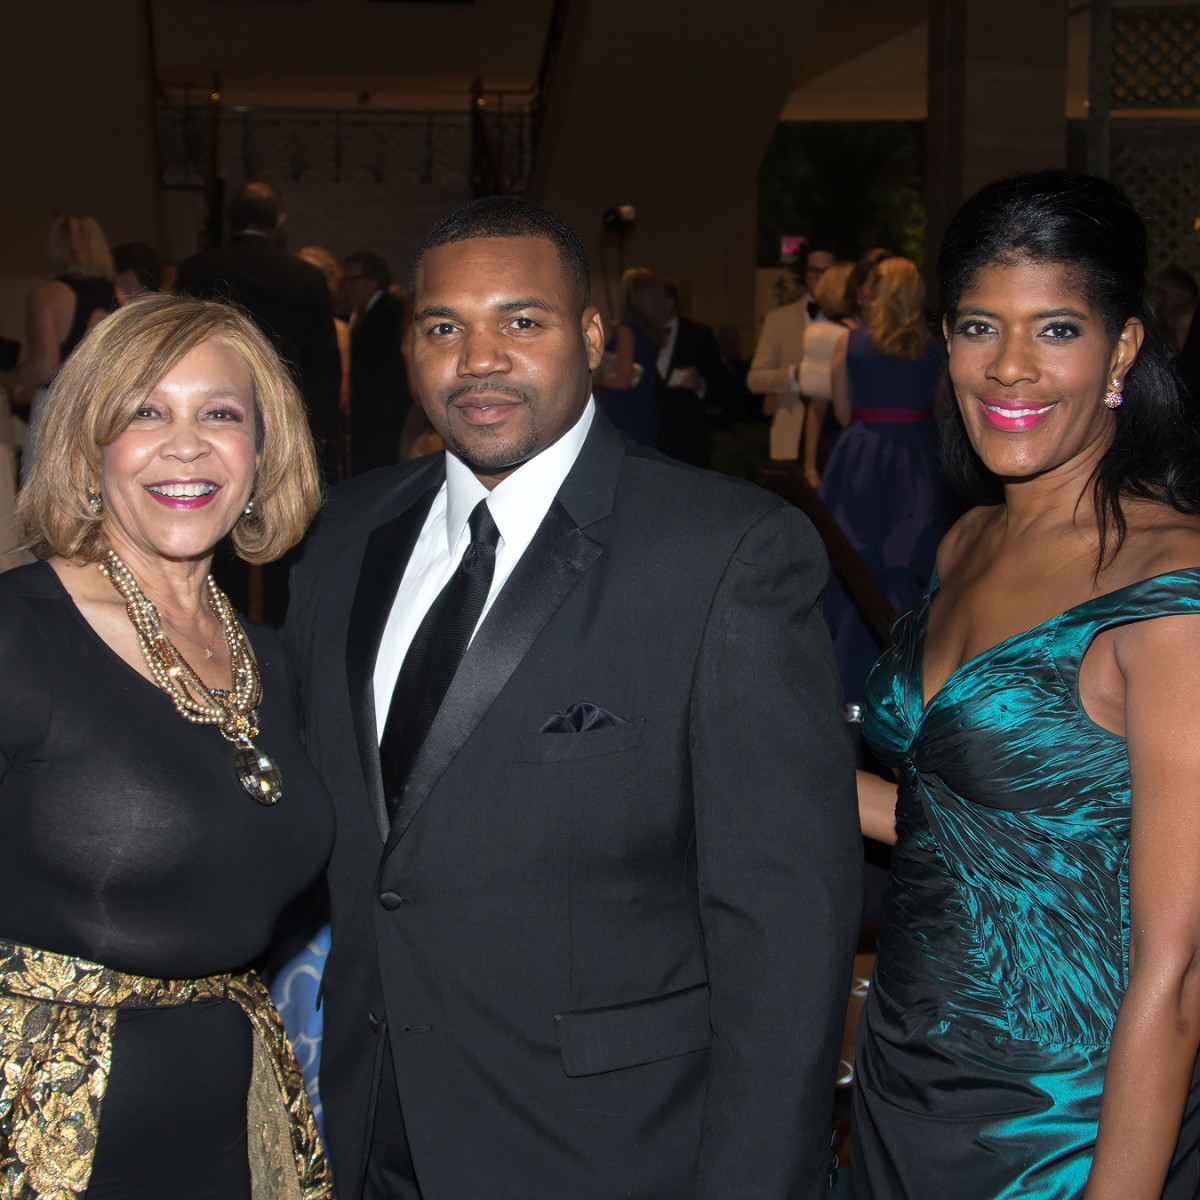 Helen Giddings, Demond Fernandez, Angela Ross